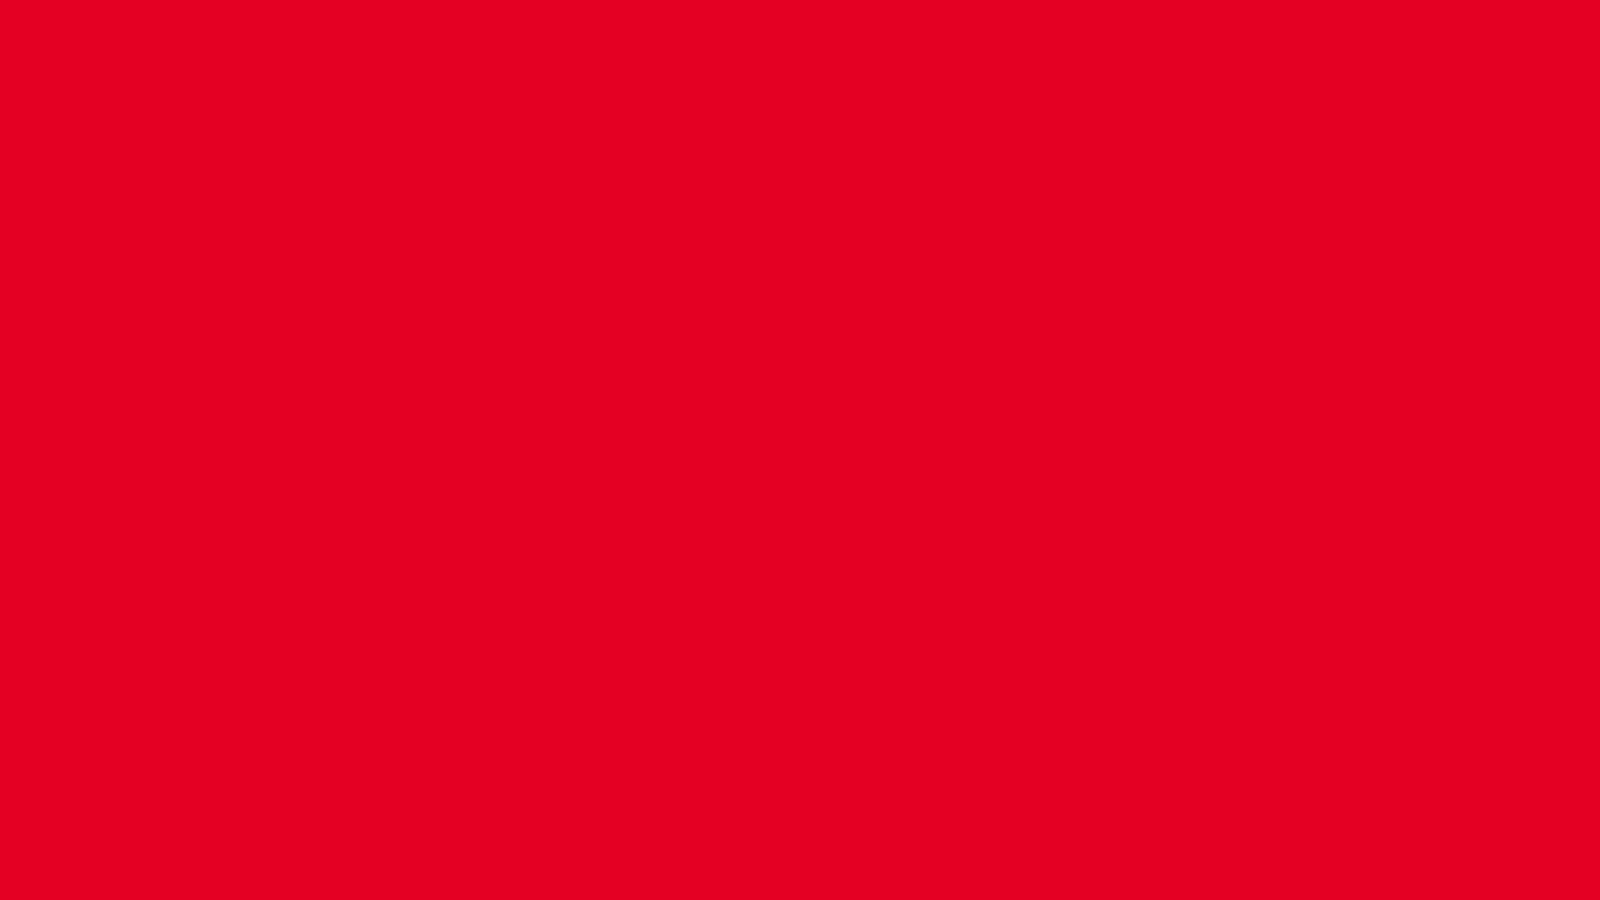 1600x900 Cadmium Red Solid Color Background